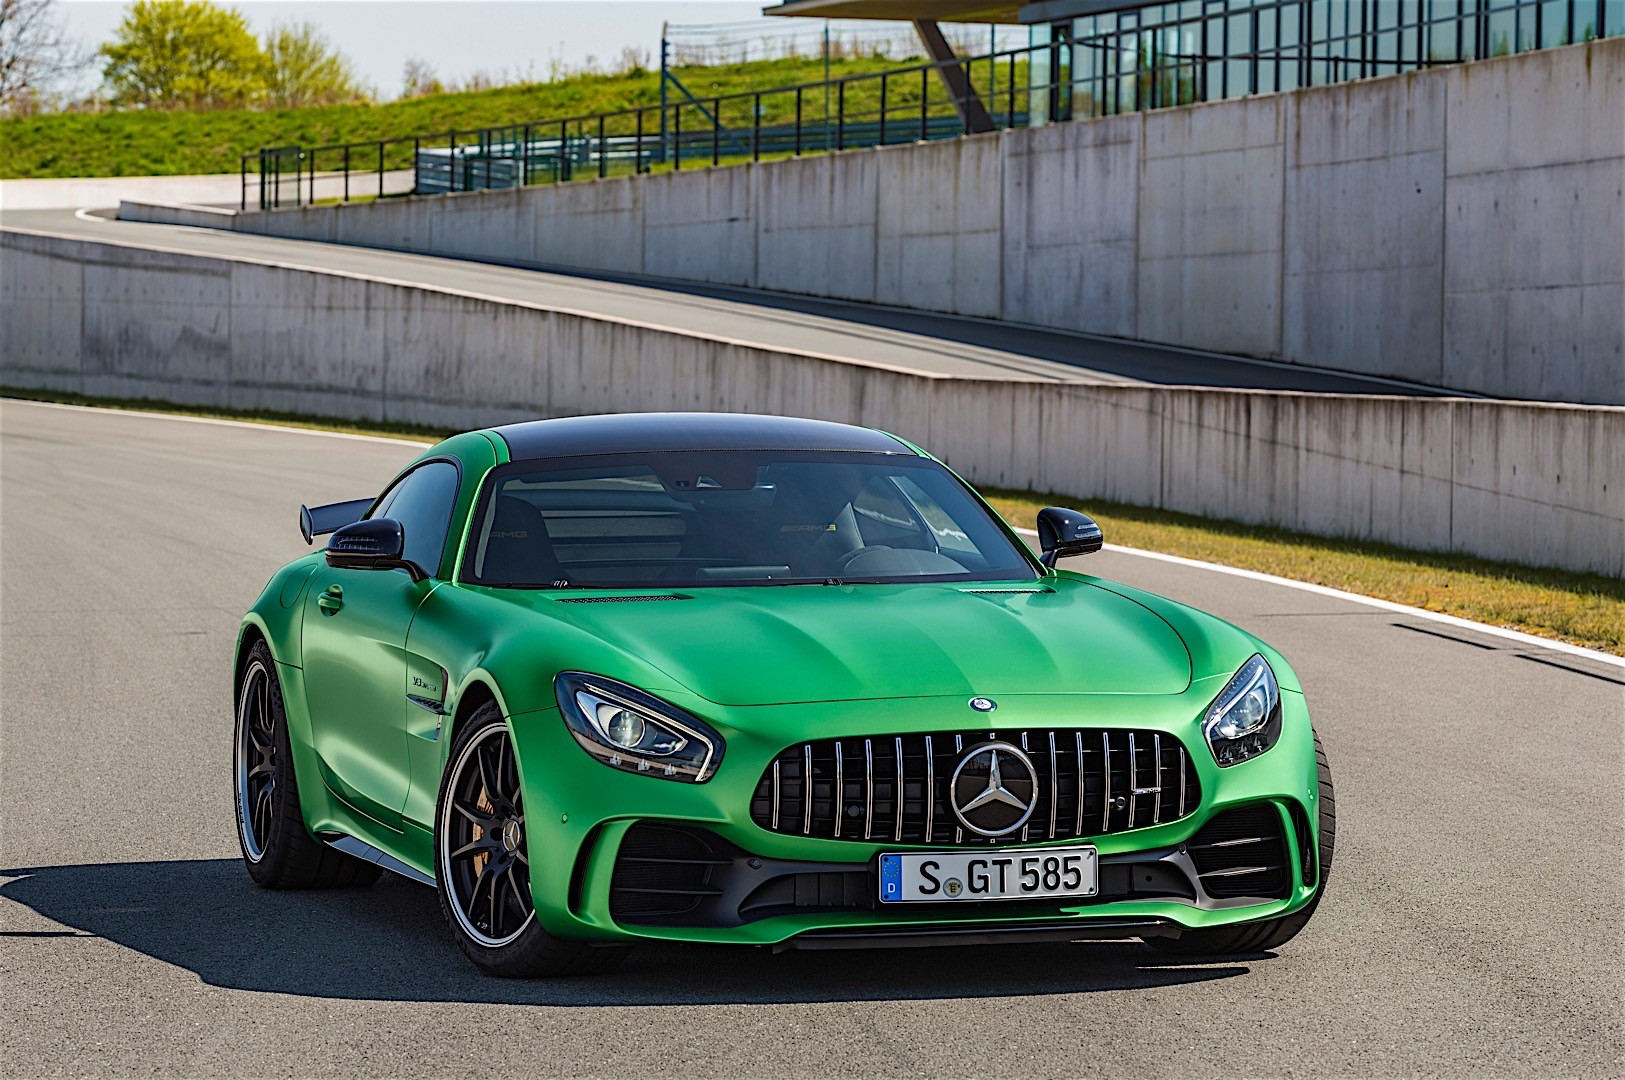 Mercedes amg gt r c190 specs 2016 2017 2018 for Mercedes benz amg gt coupe price